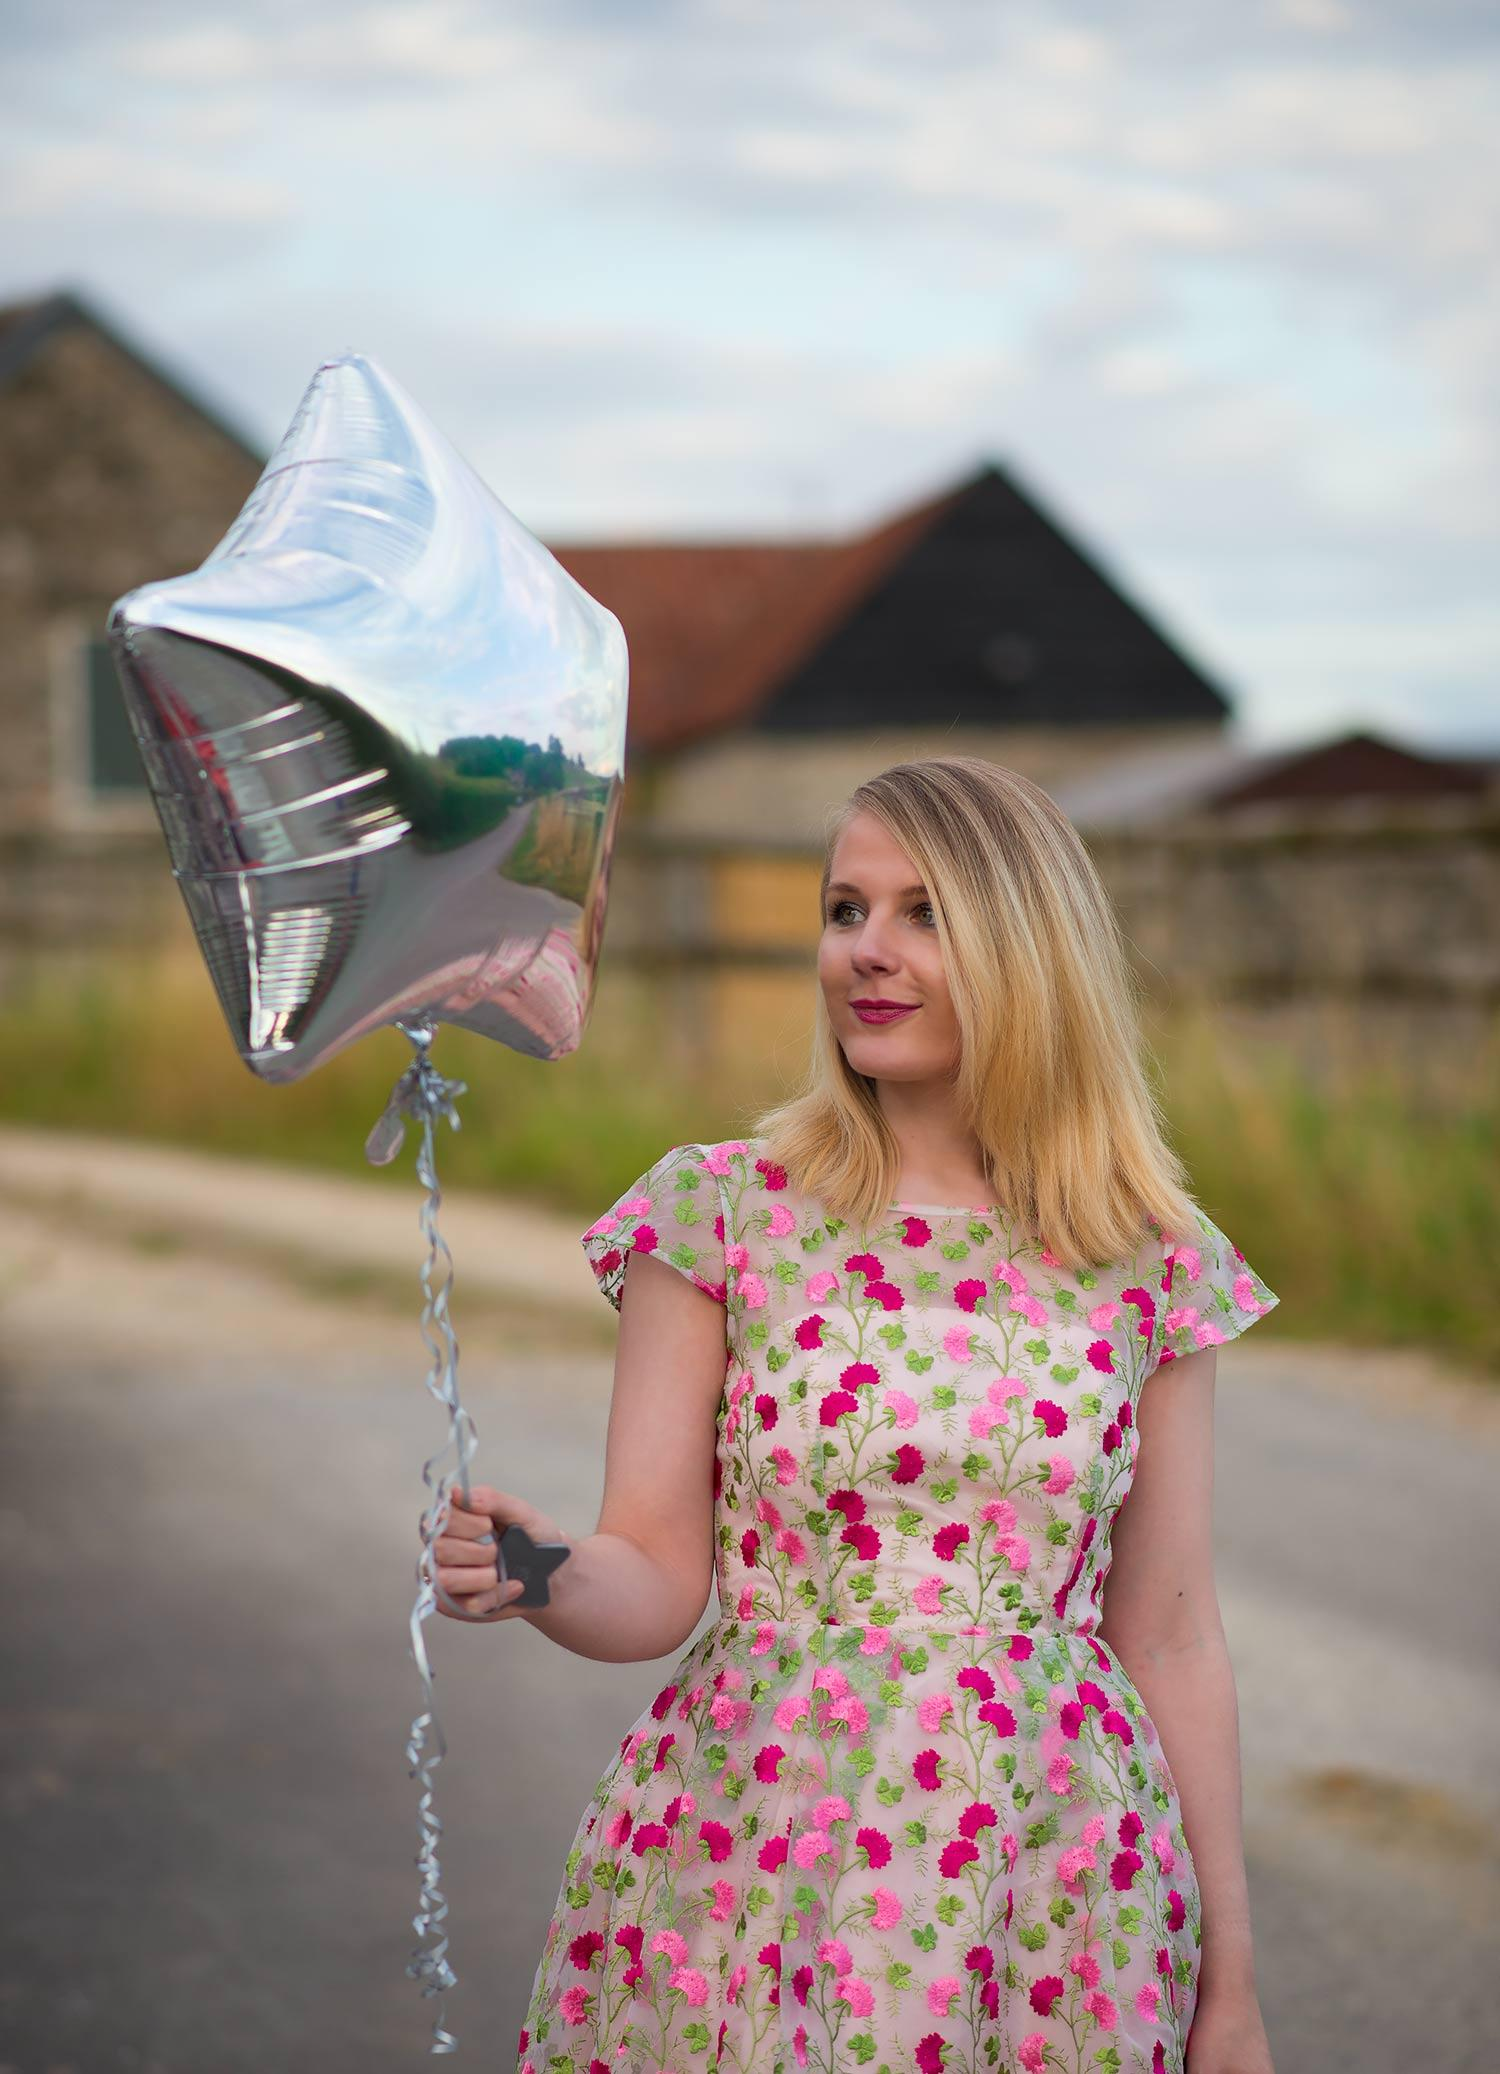 lorna burford fashion blogger birthday balloon